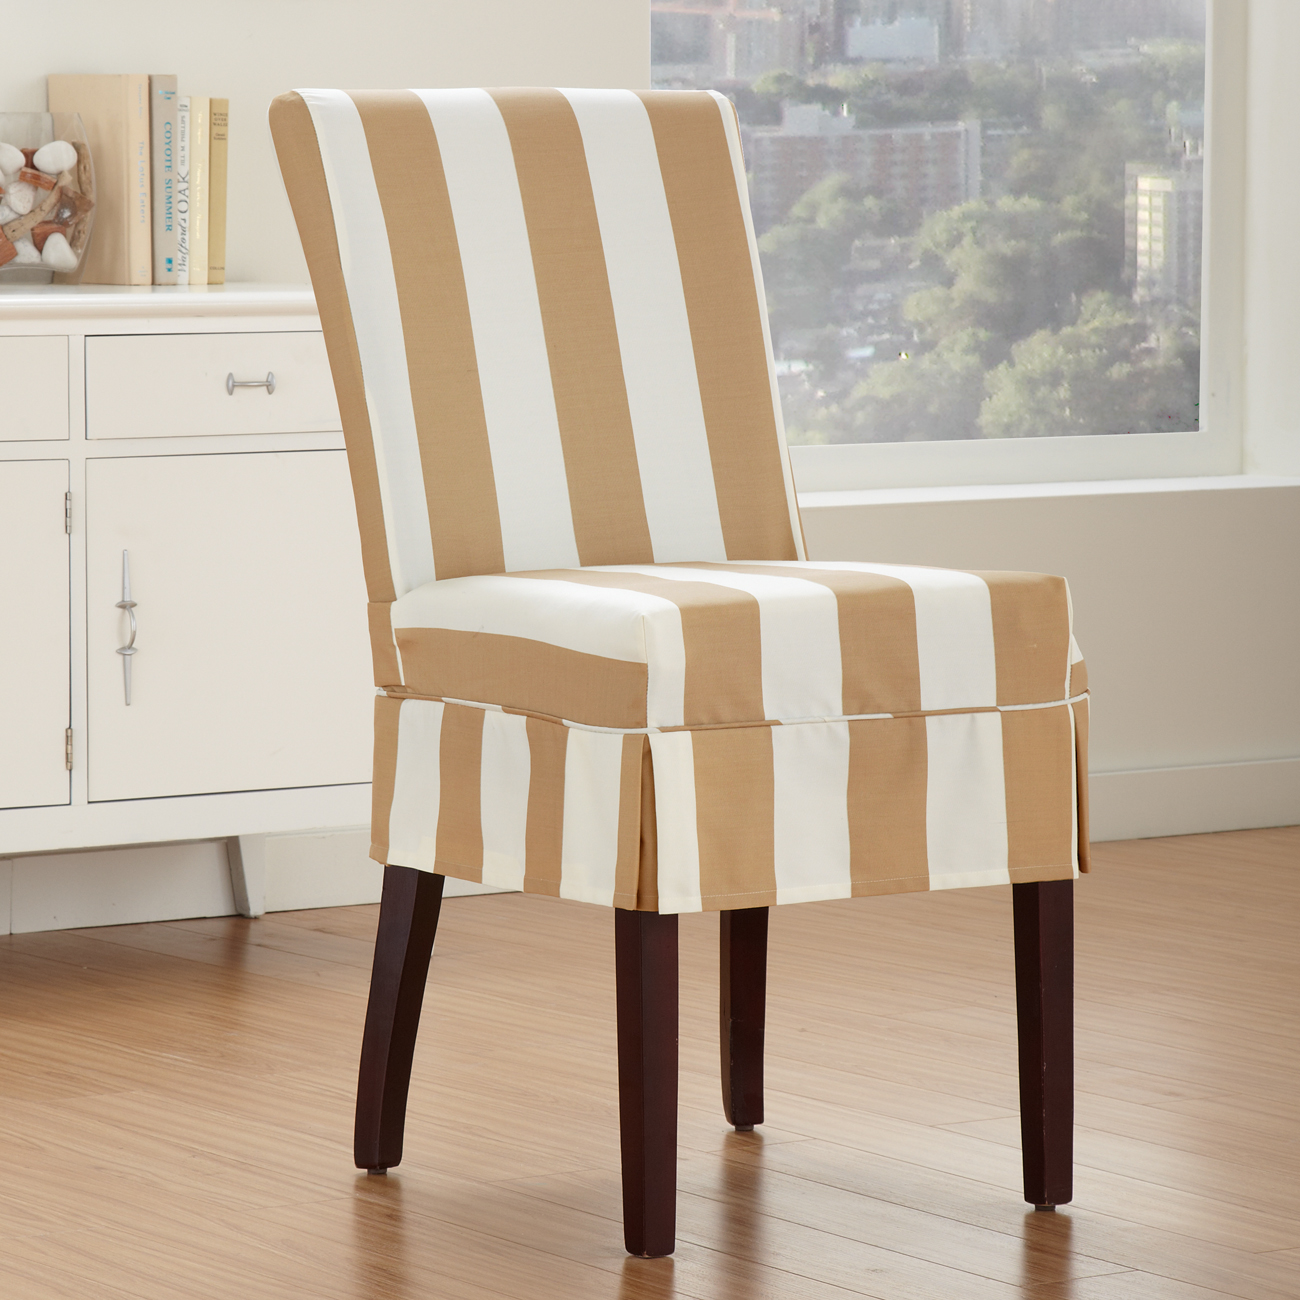 Slipcover for dining chairs large and beautiful photos Photo to